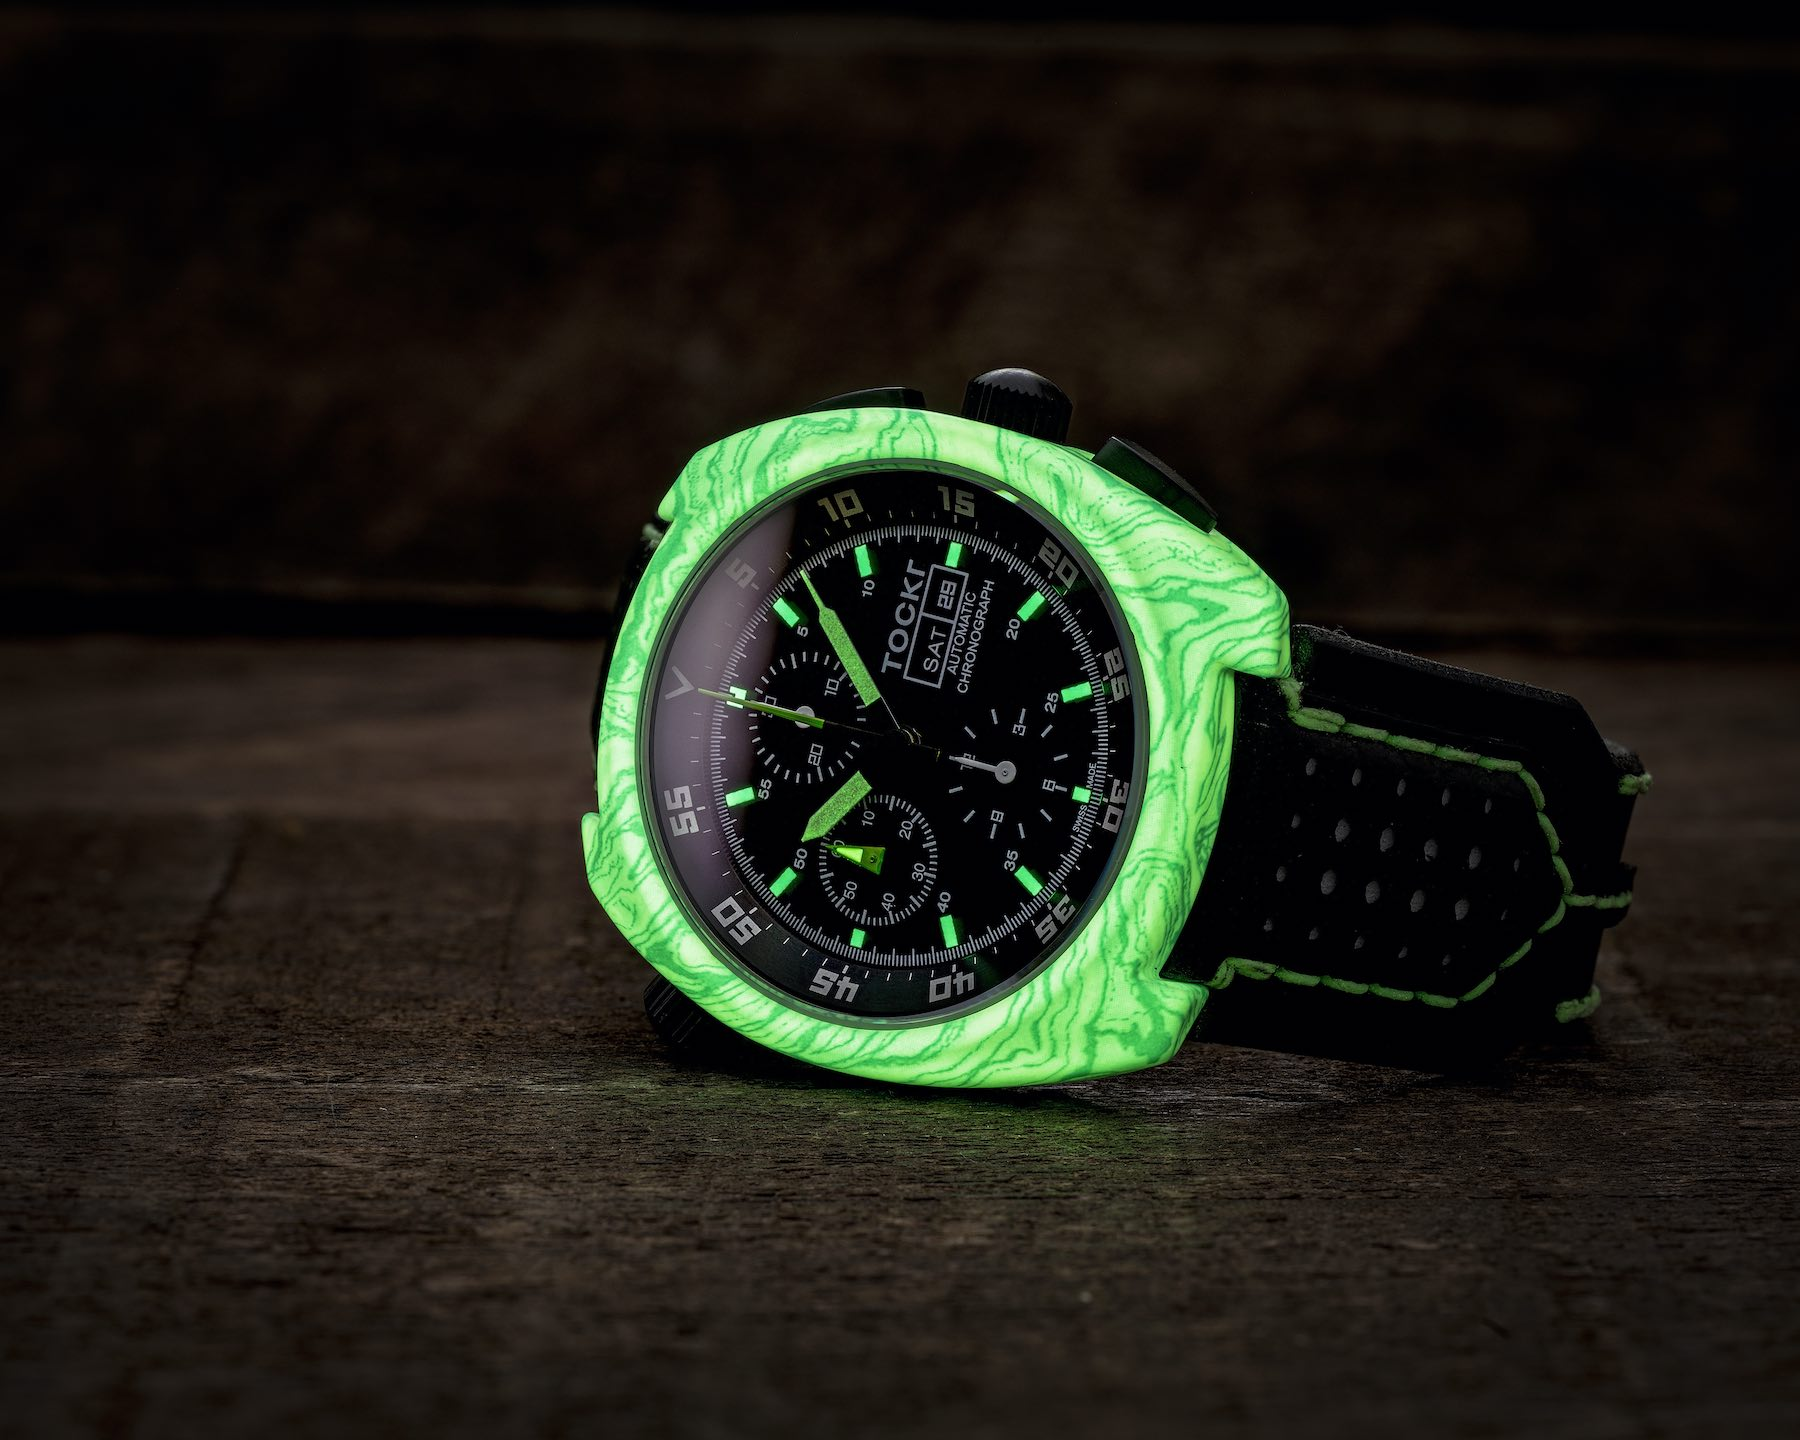 Tockr Air-Defender Lume with Luminescent Hydro Dipped Cases - 7